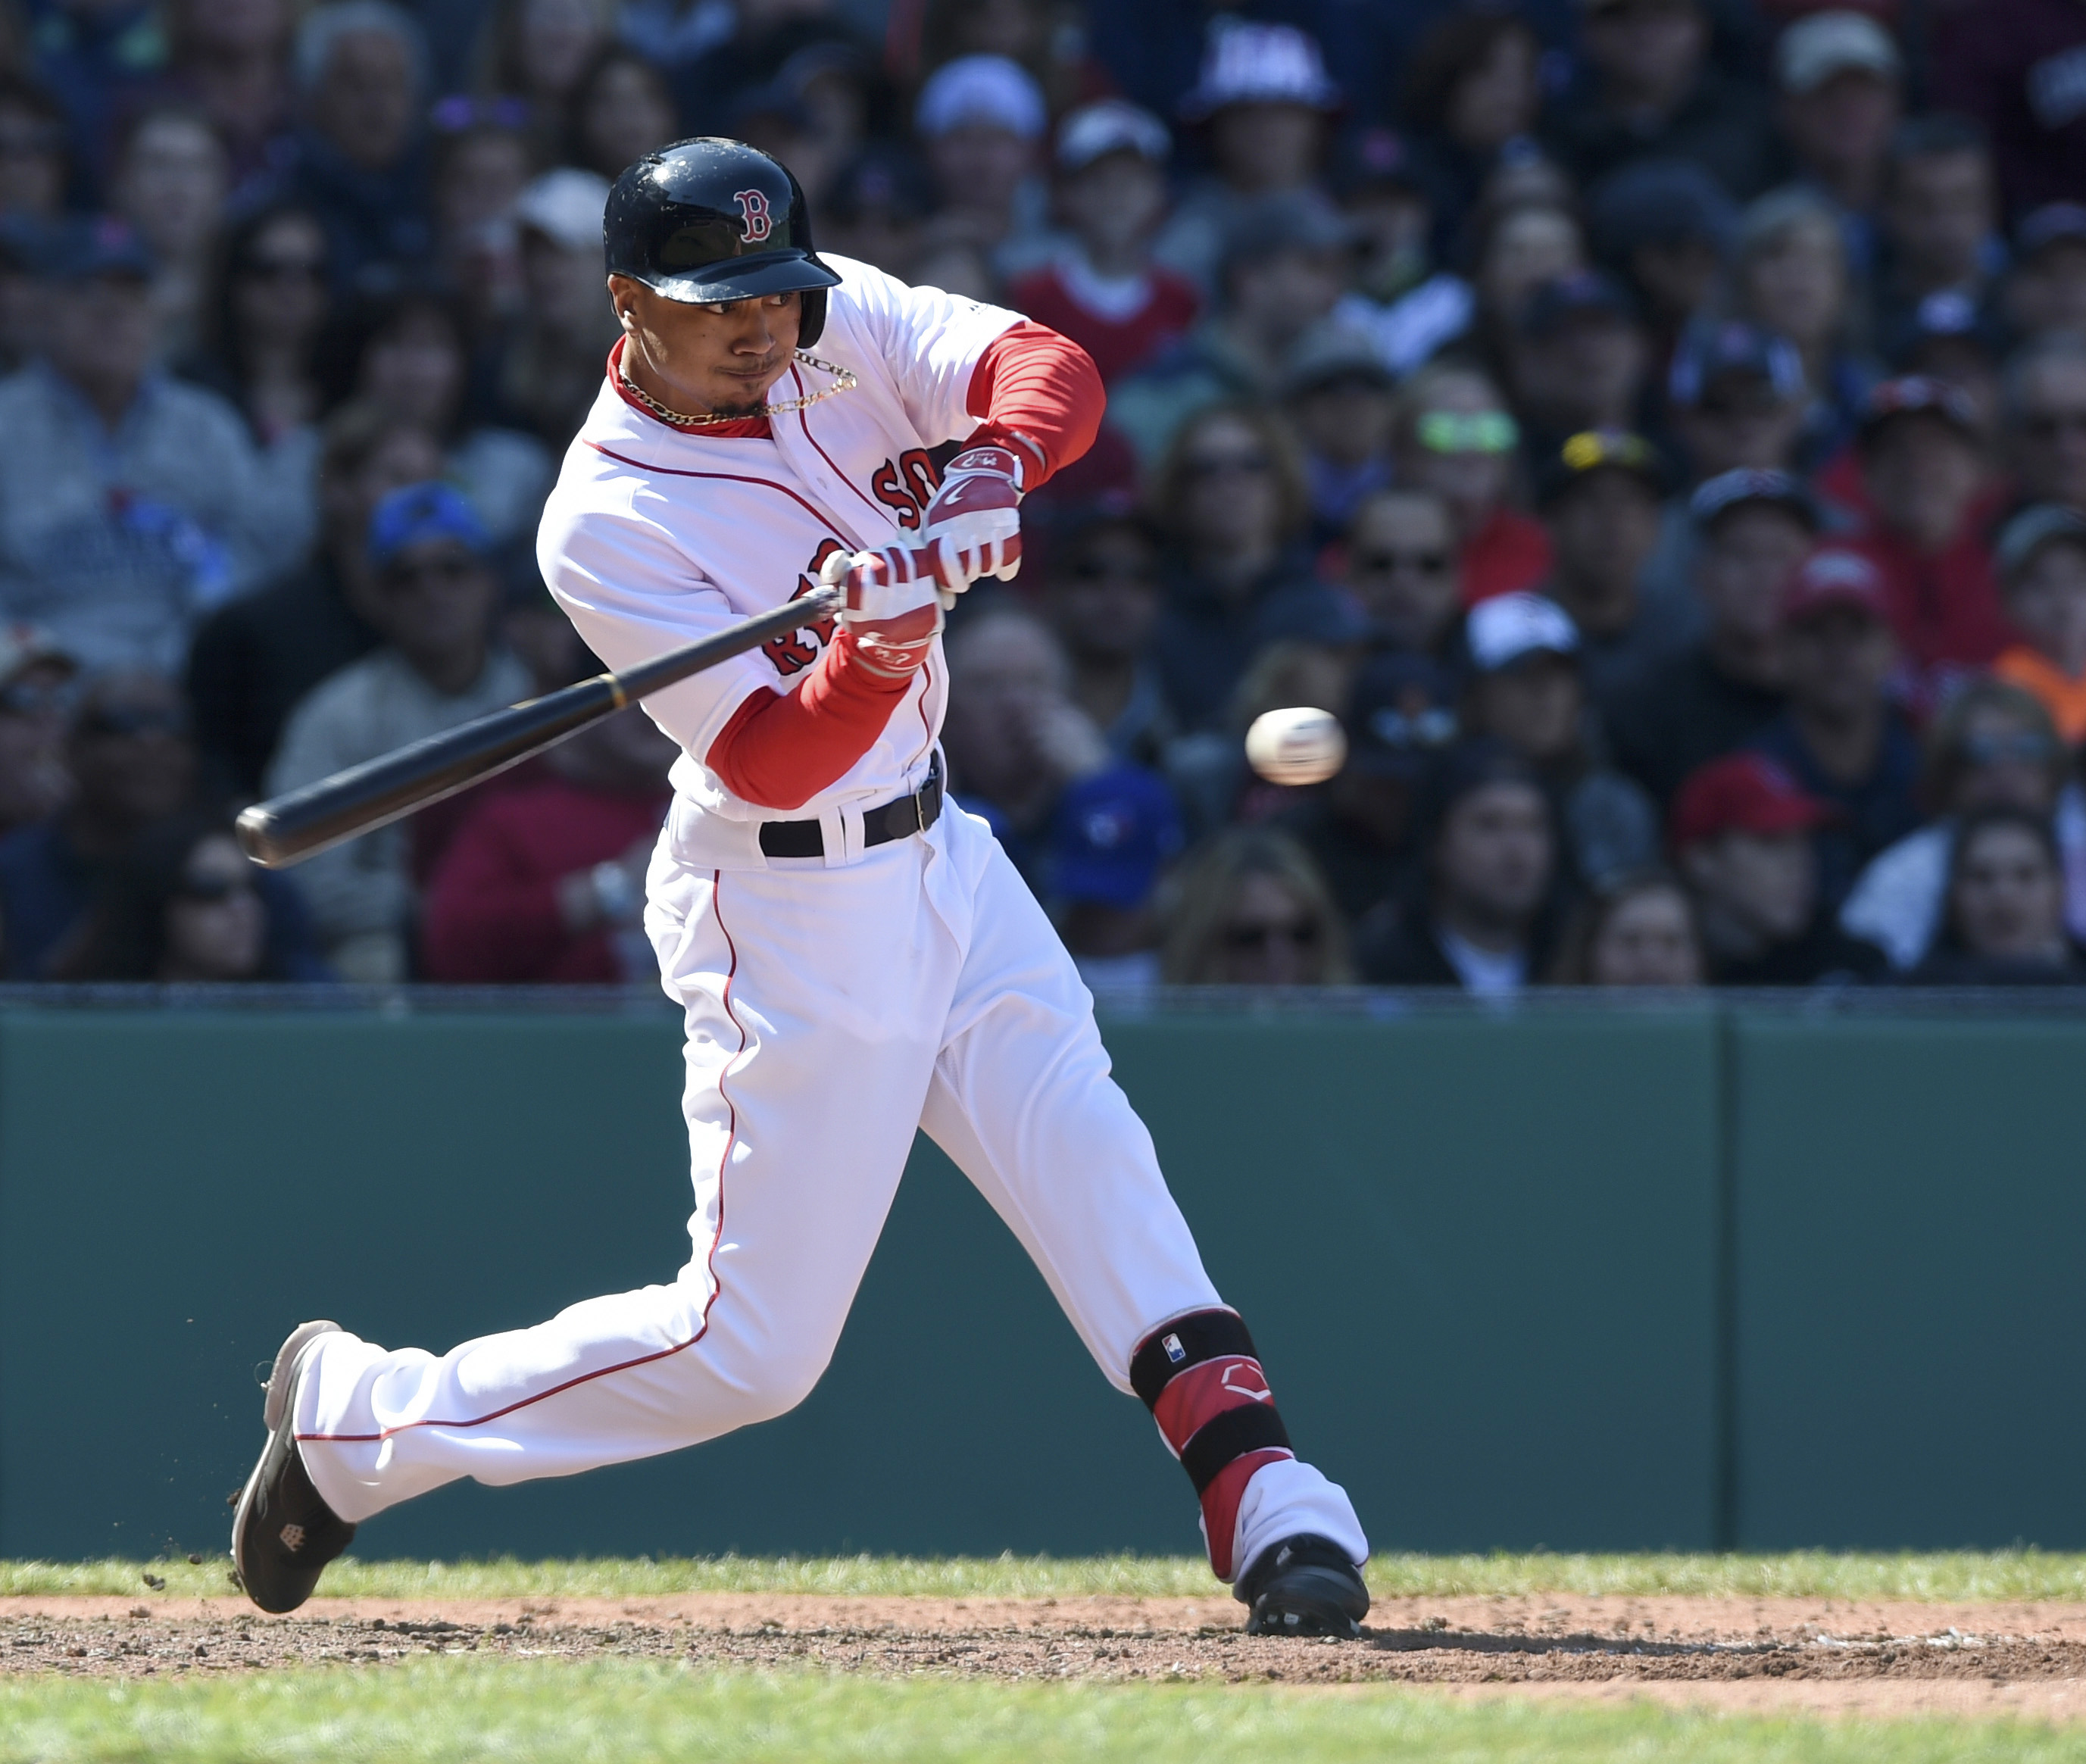 Red Sox outfielder Mookie Betts.